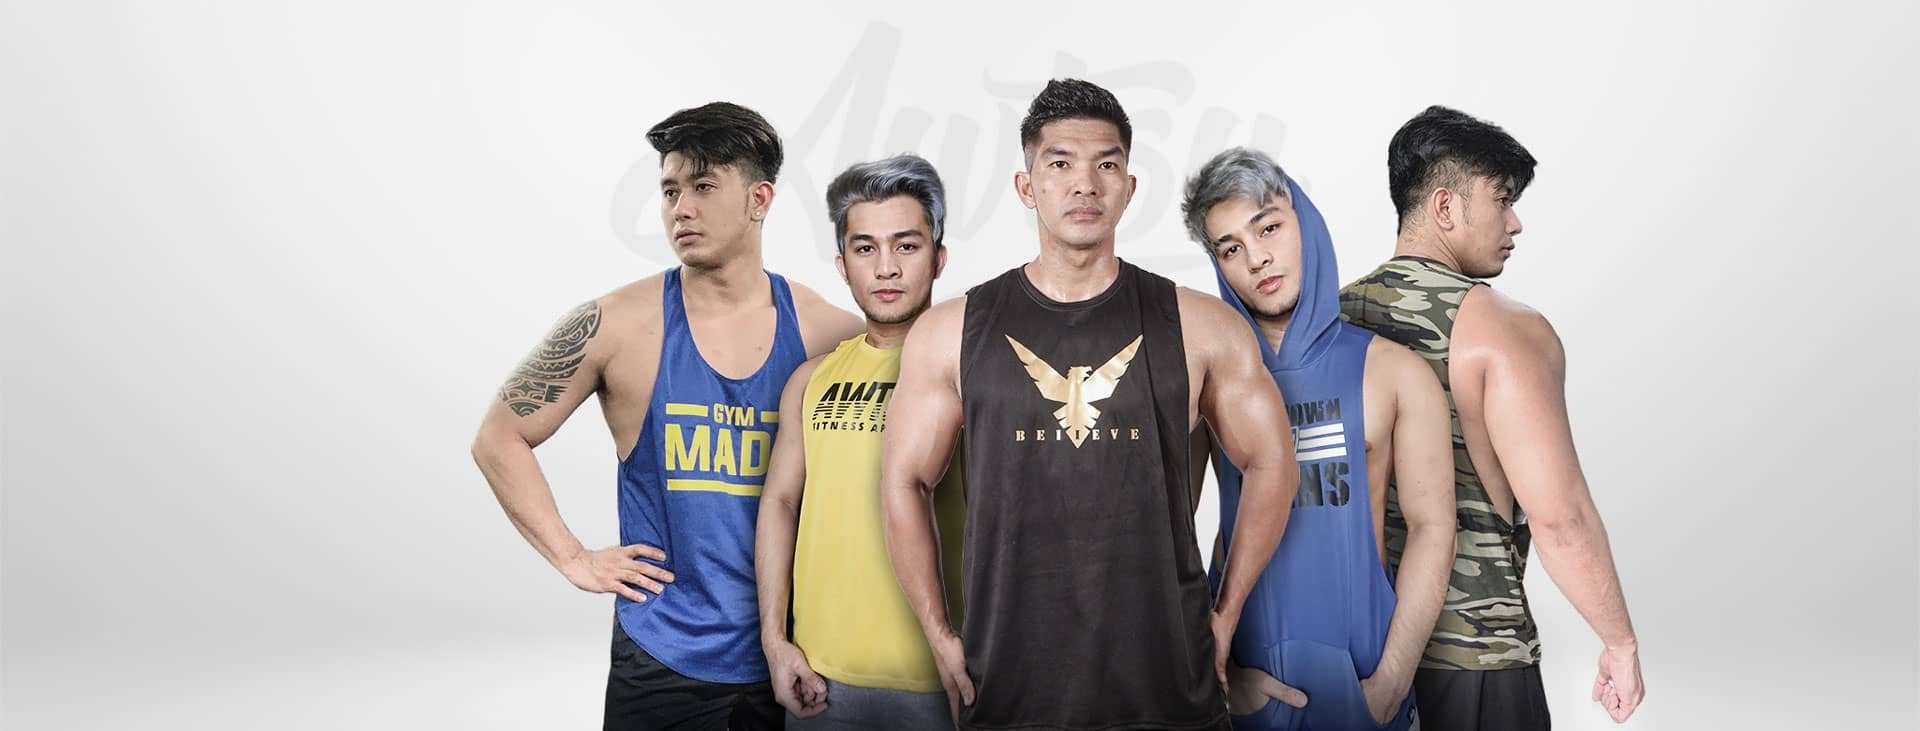 Awtsu Fitness Apparel, openside hoodies, openside sandos, tank tops, muscle tank tops, muscle t-shirt, squat shorts, joggers, gym stringers, sweat shorts and pull-over hoodies